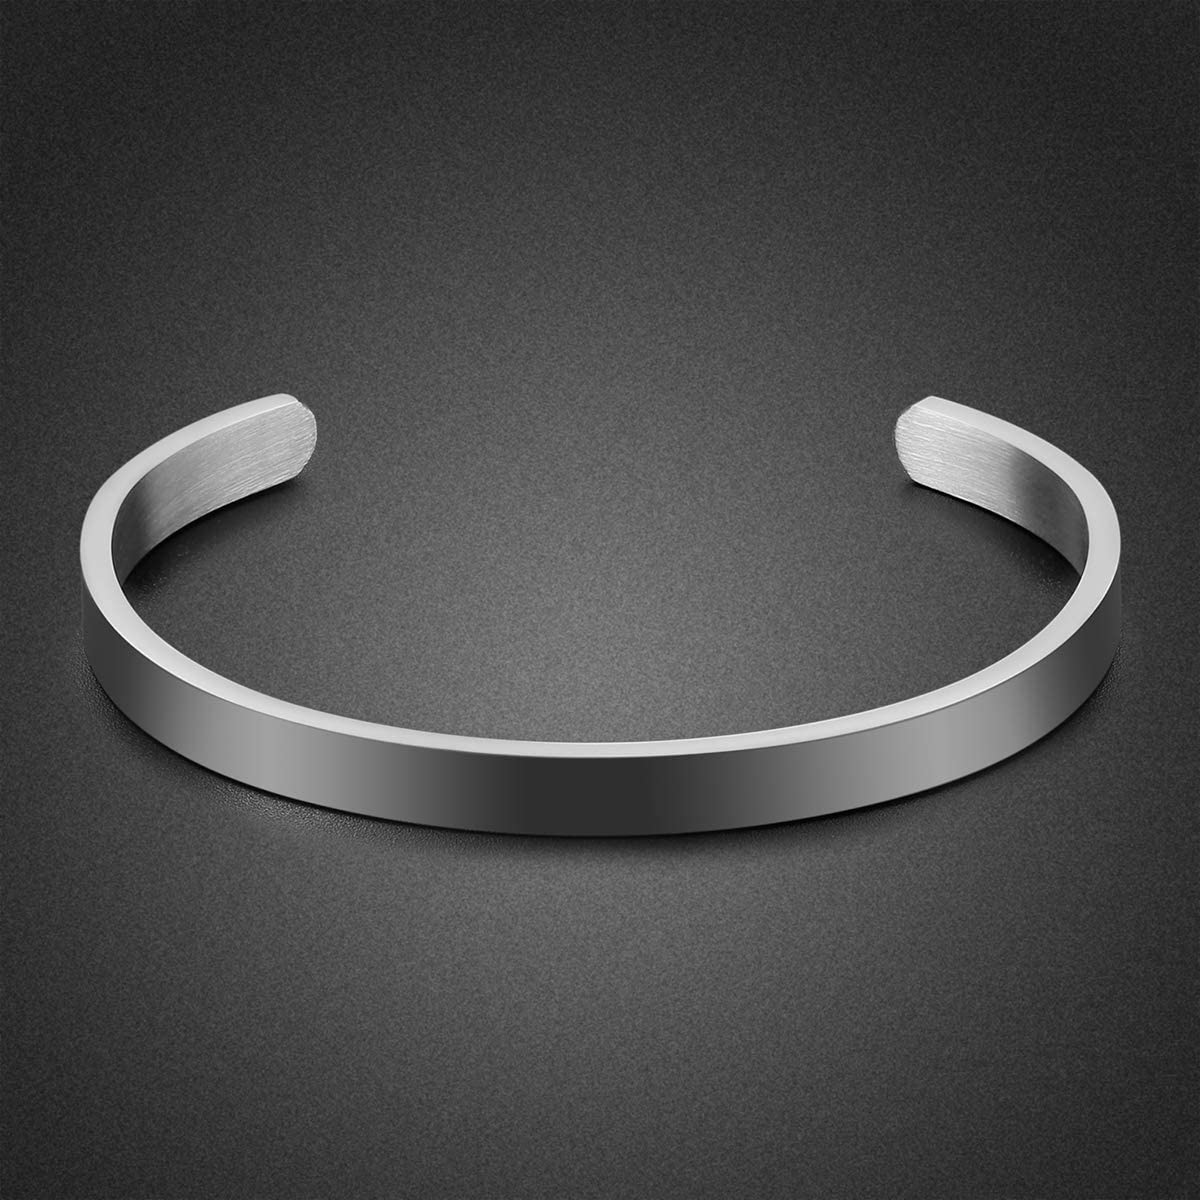 Daughter Bracelet Gifts Inspirational Gifts for Daughter Stainless Steel Engraved Crown Cuff Bracelet Birthday Gifts for Women Teen Girls